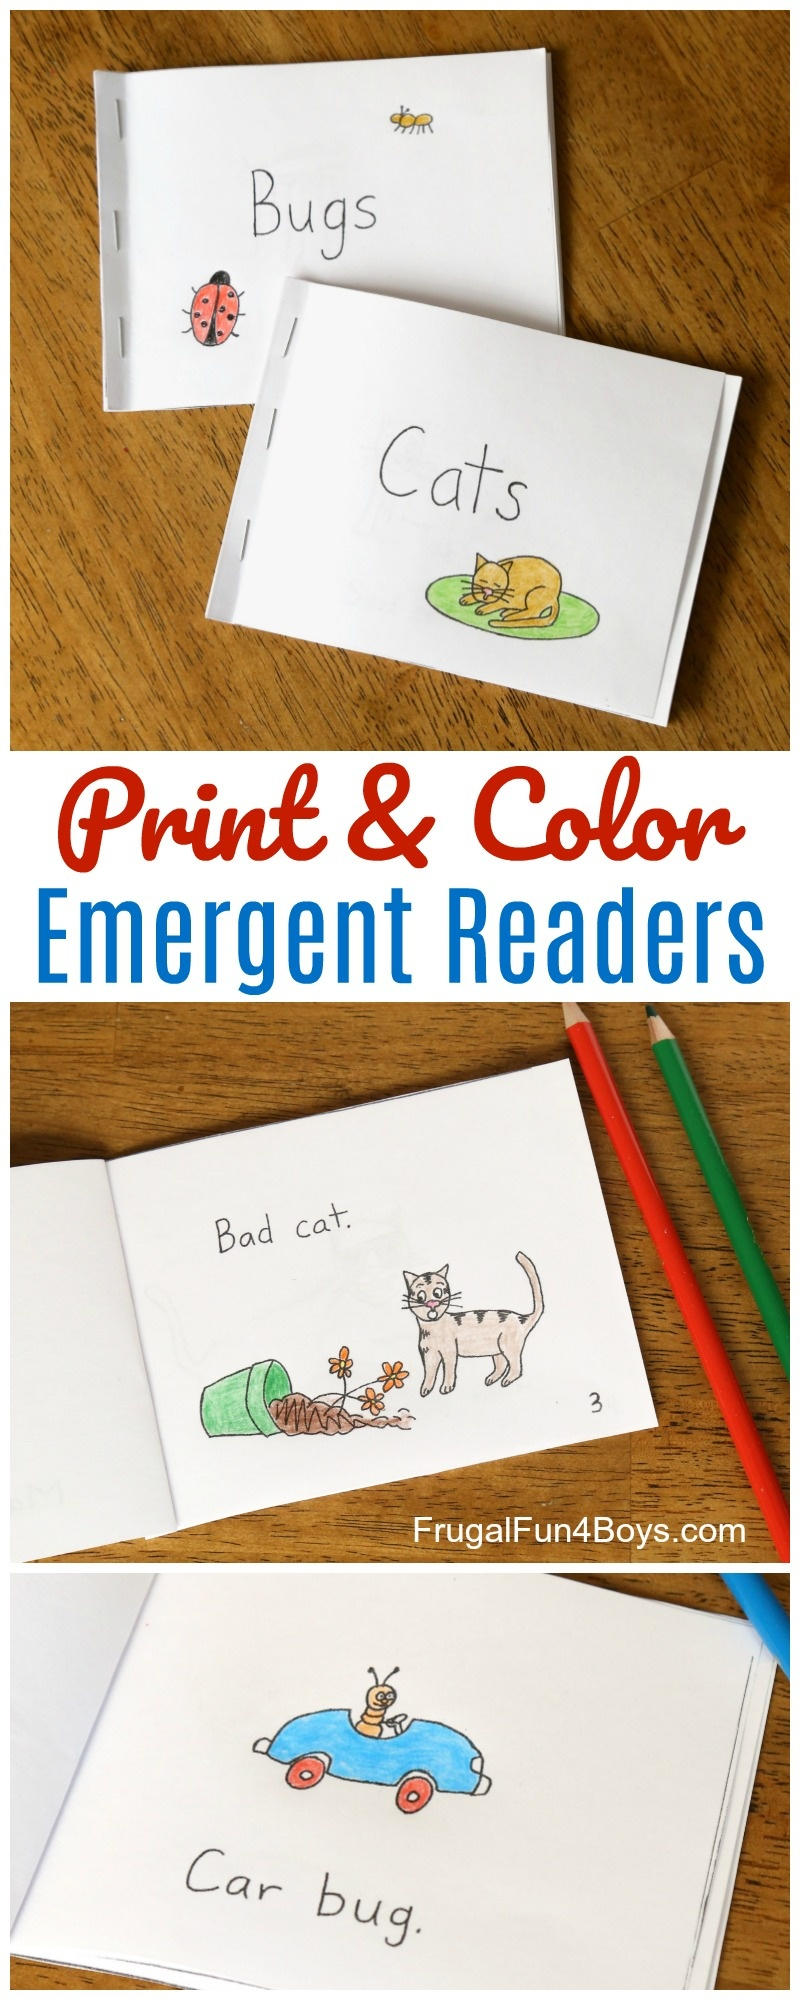 Free Printable Books For Beginning Readers - Level 1 (Easy) - Frugal - Free Printable Books For Beginning Readers